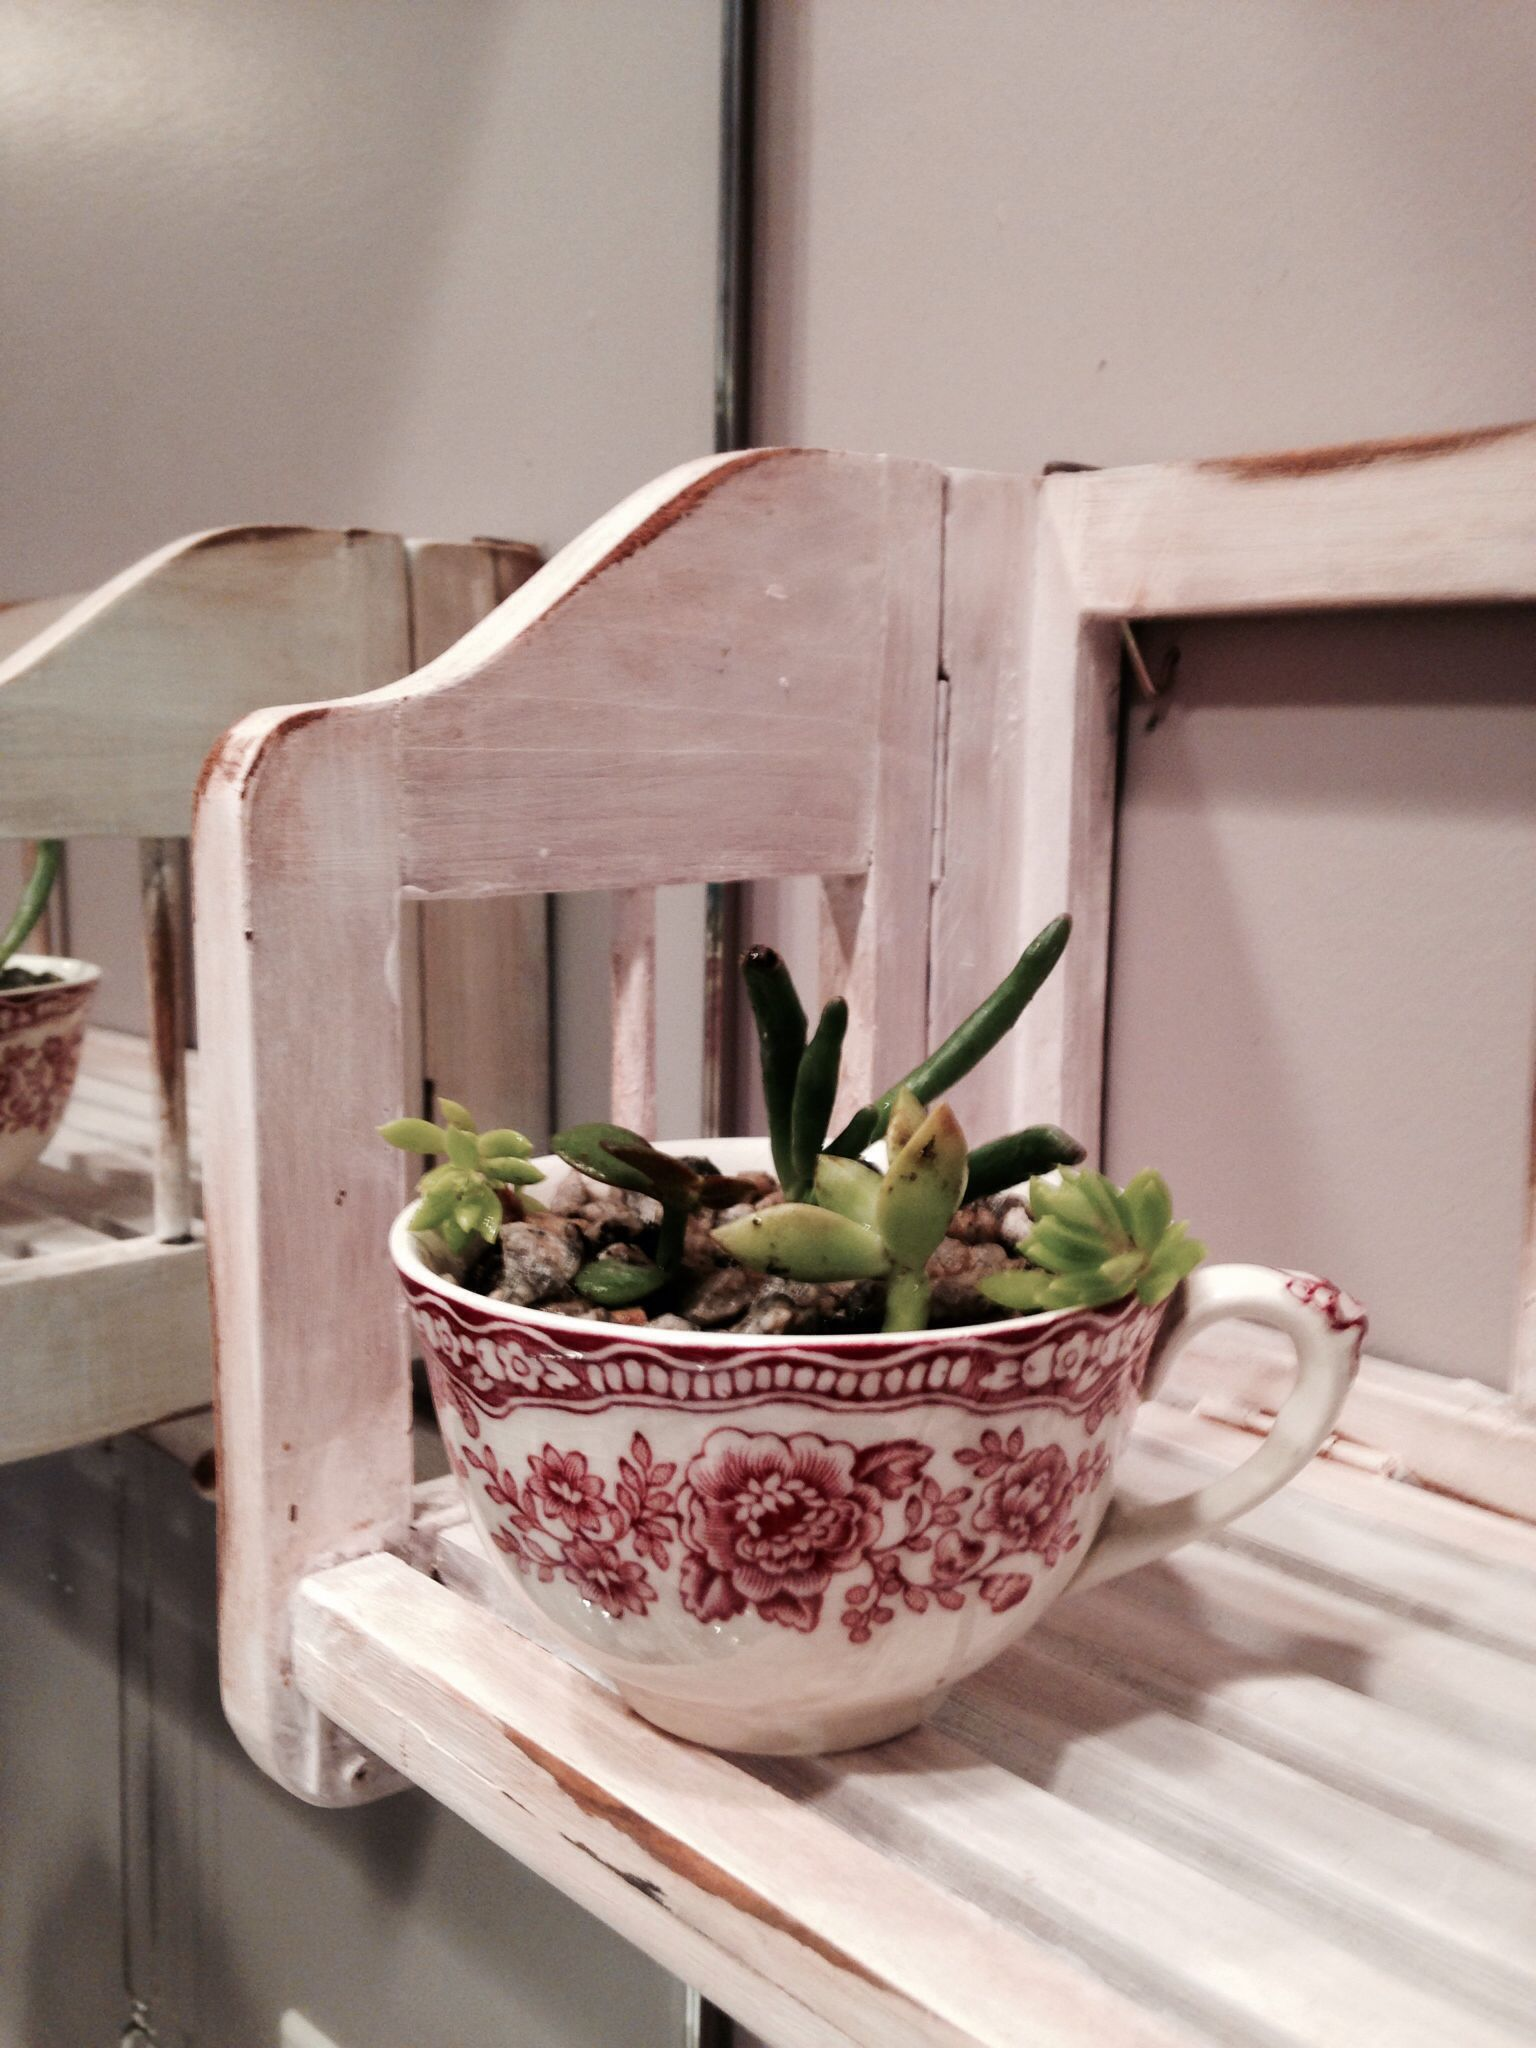 Cute teacups that you're not using or chipped??...turn them into cute mini succulent dish gardens for a small shelf or window sill